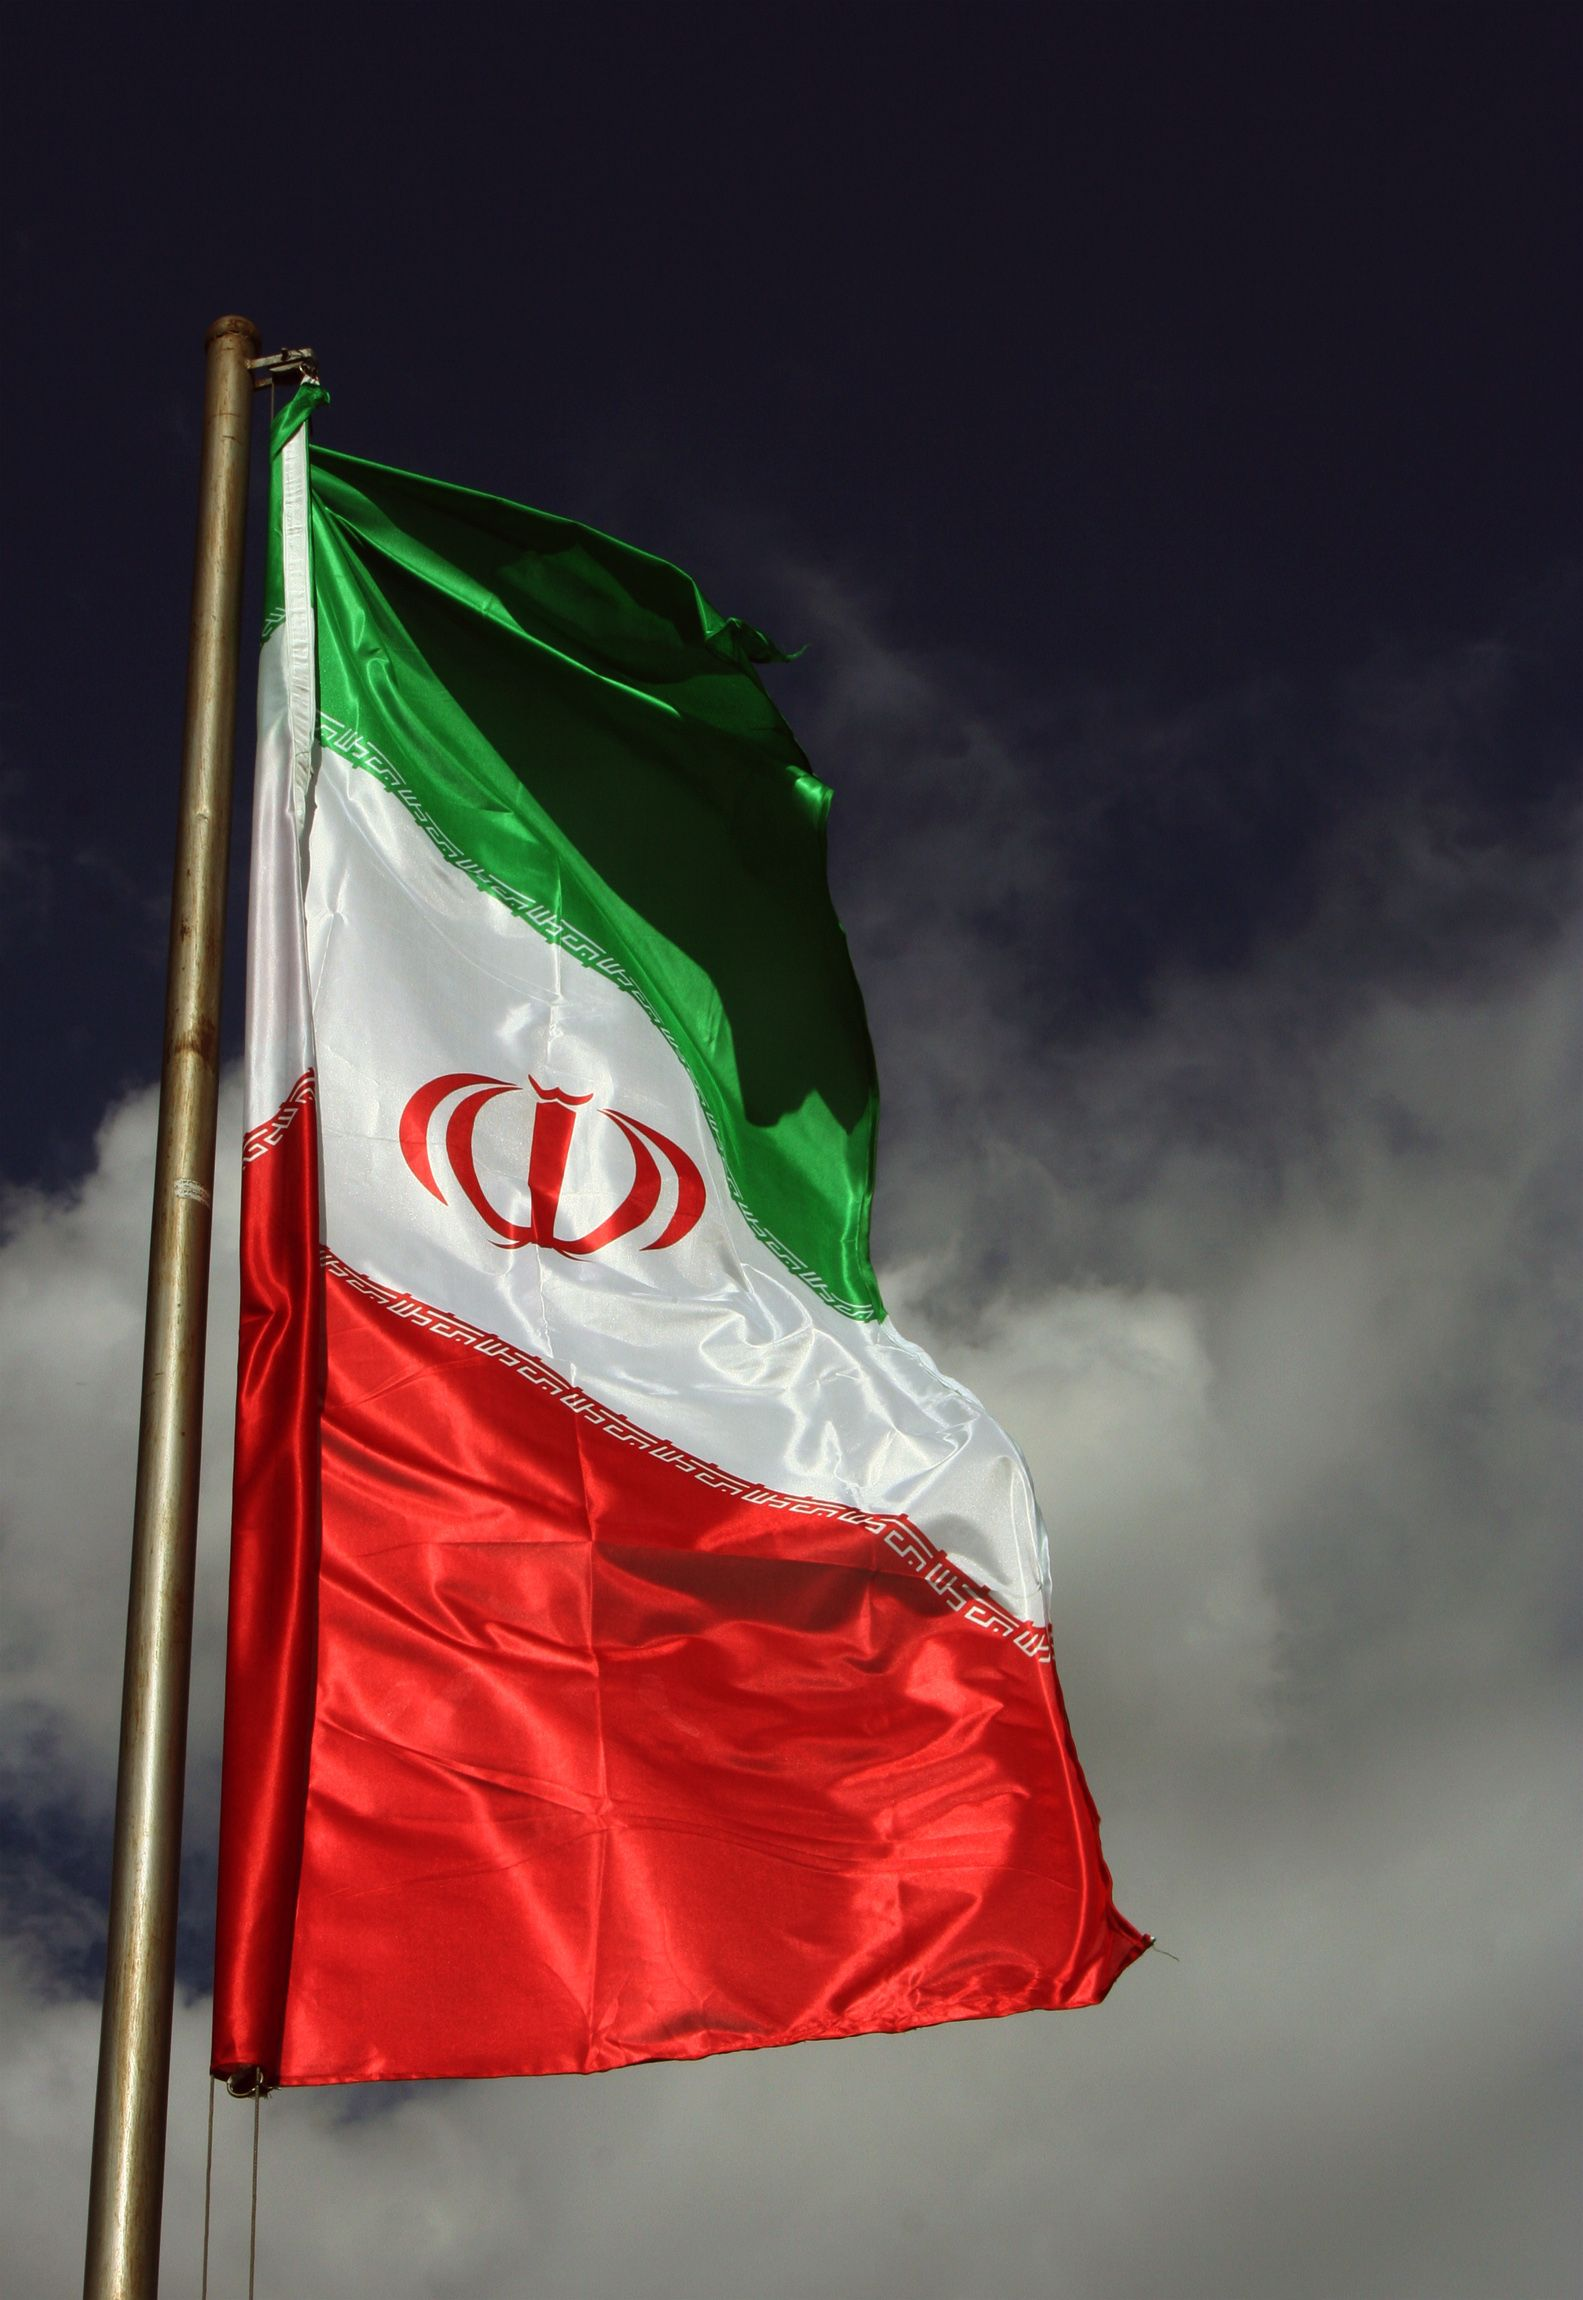 Pin By θεά μου αφροδίτη On Skype A World Of Possibilities Cyber Threat Iran Iran Flag